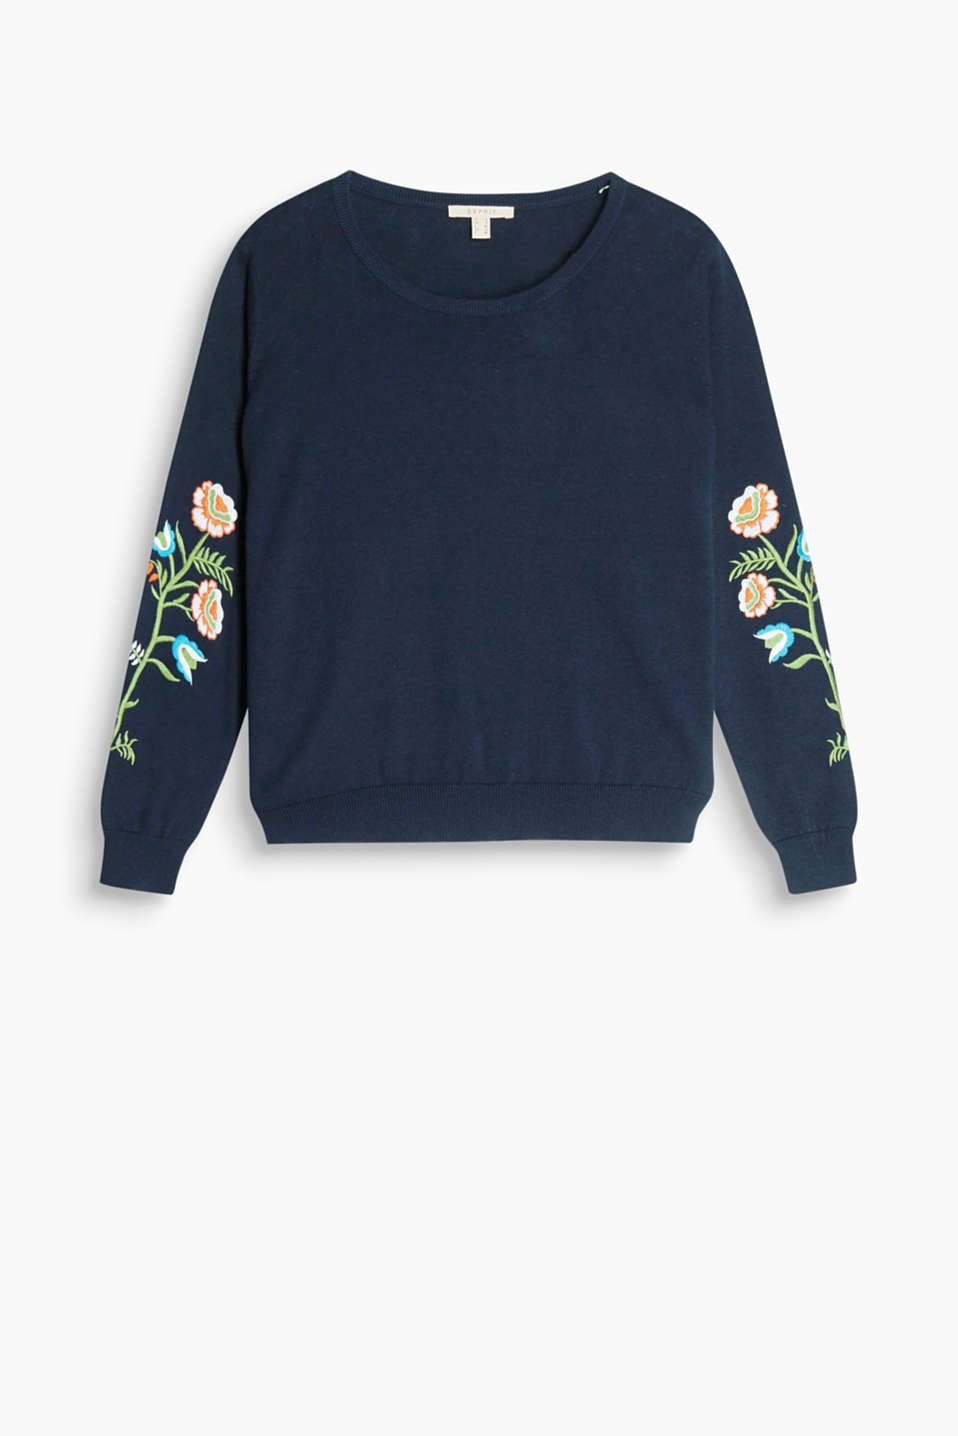 Short fine knit jumper in pure cotton with elaborate floral embroidery